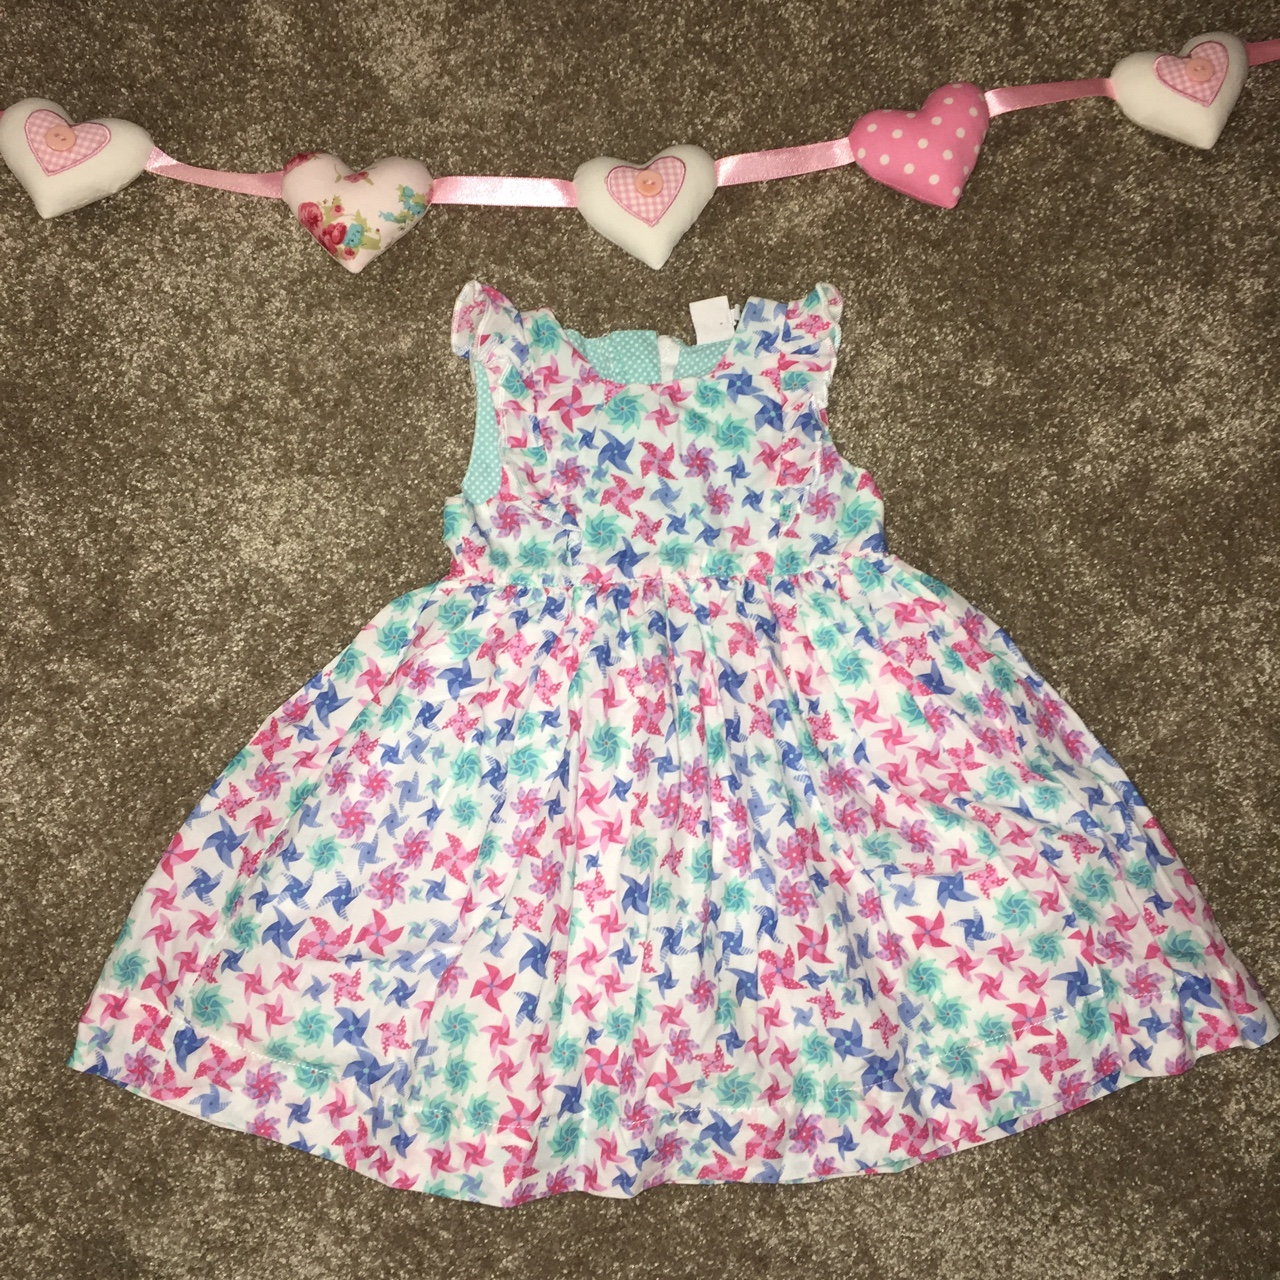 acf511ab0 Gorgeous boots mini club baby girls party dress age... - Depop